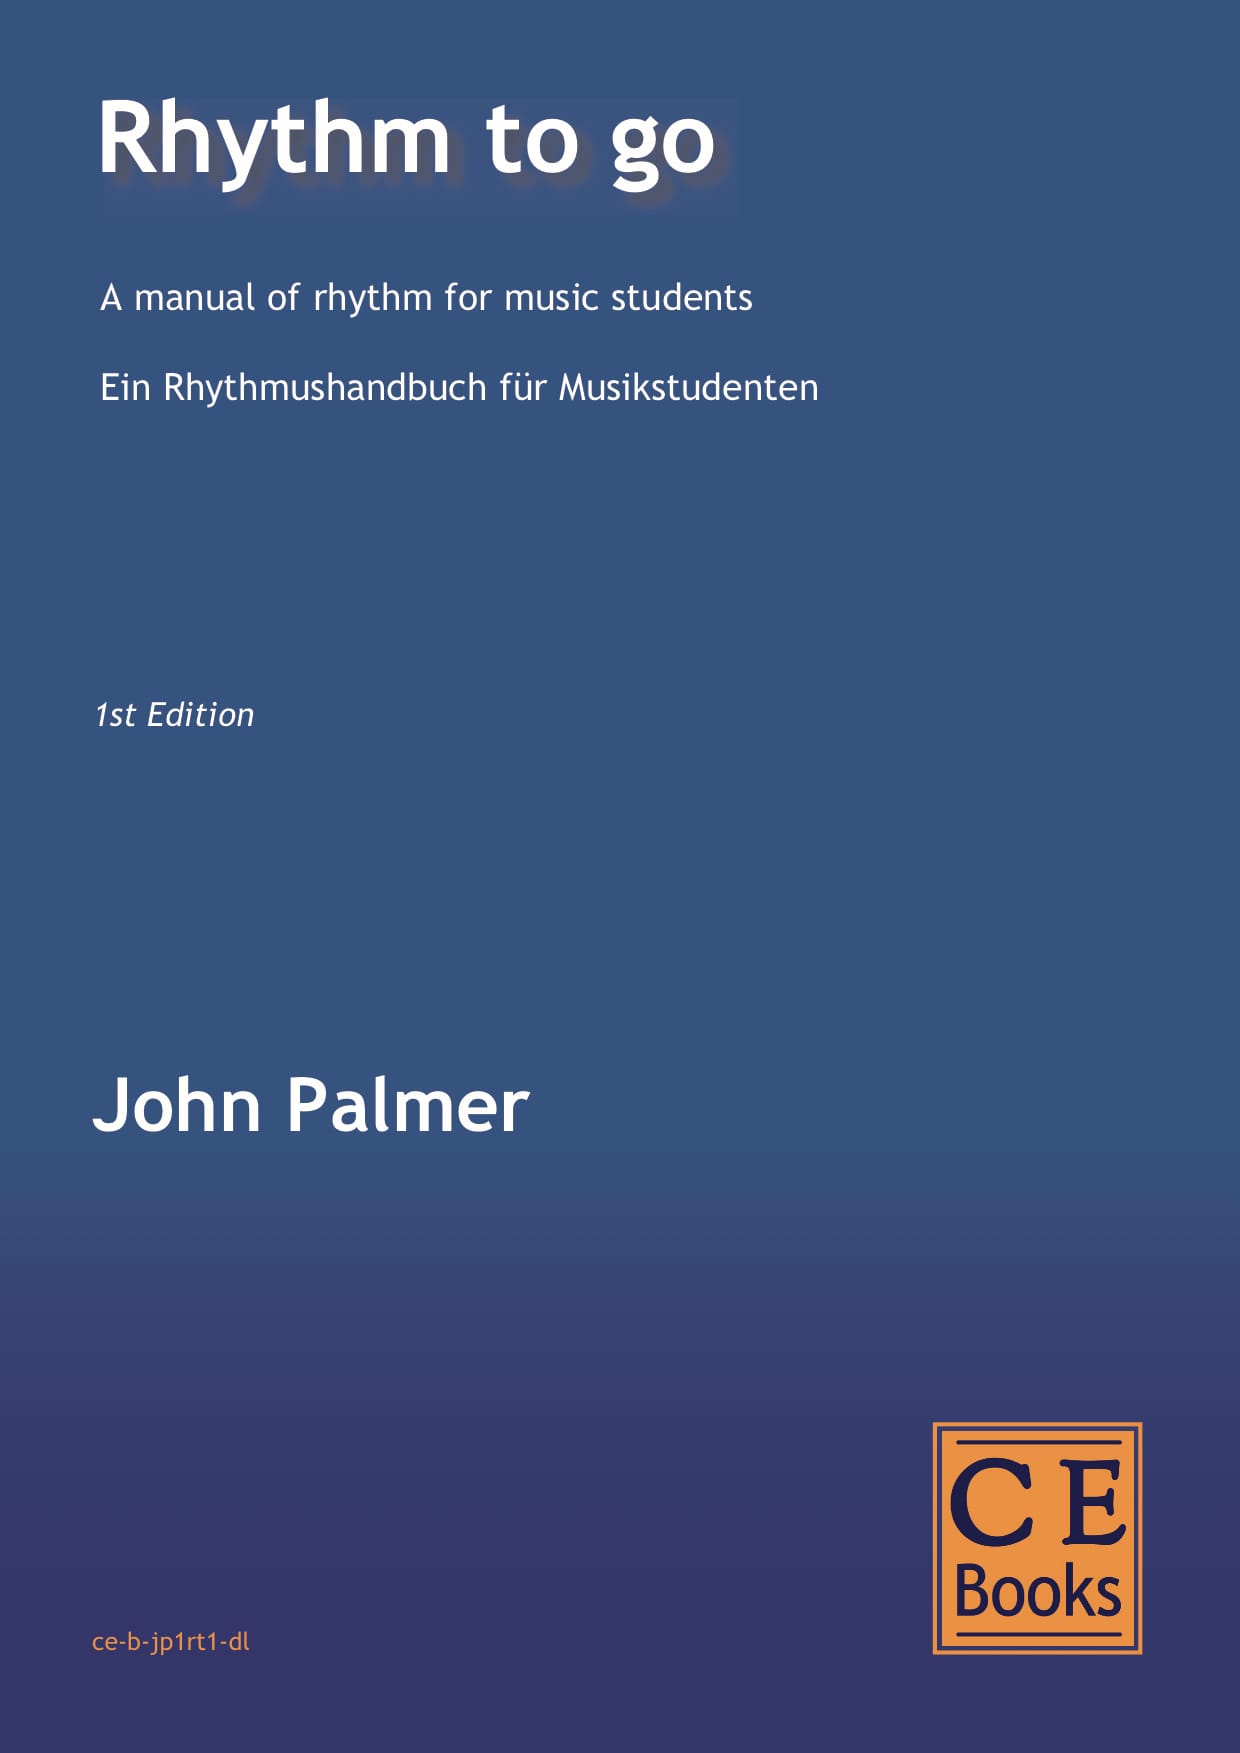 John Palmer: Rhythm to go 4th Edition. A manual of rhythm for music students and professional musicians and a concert piece for any number of musicians